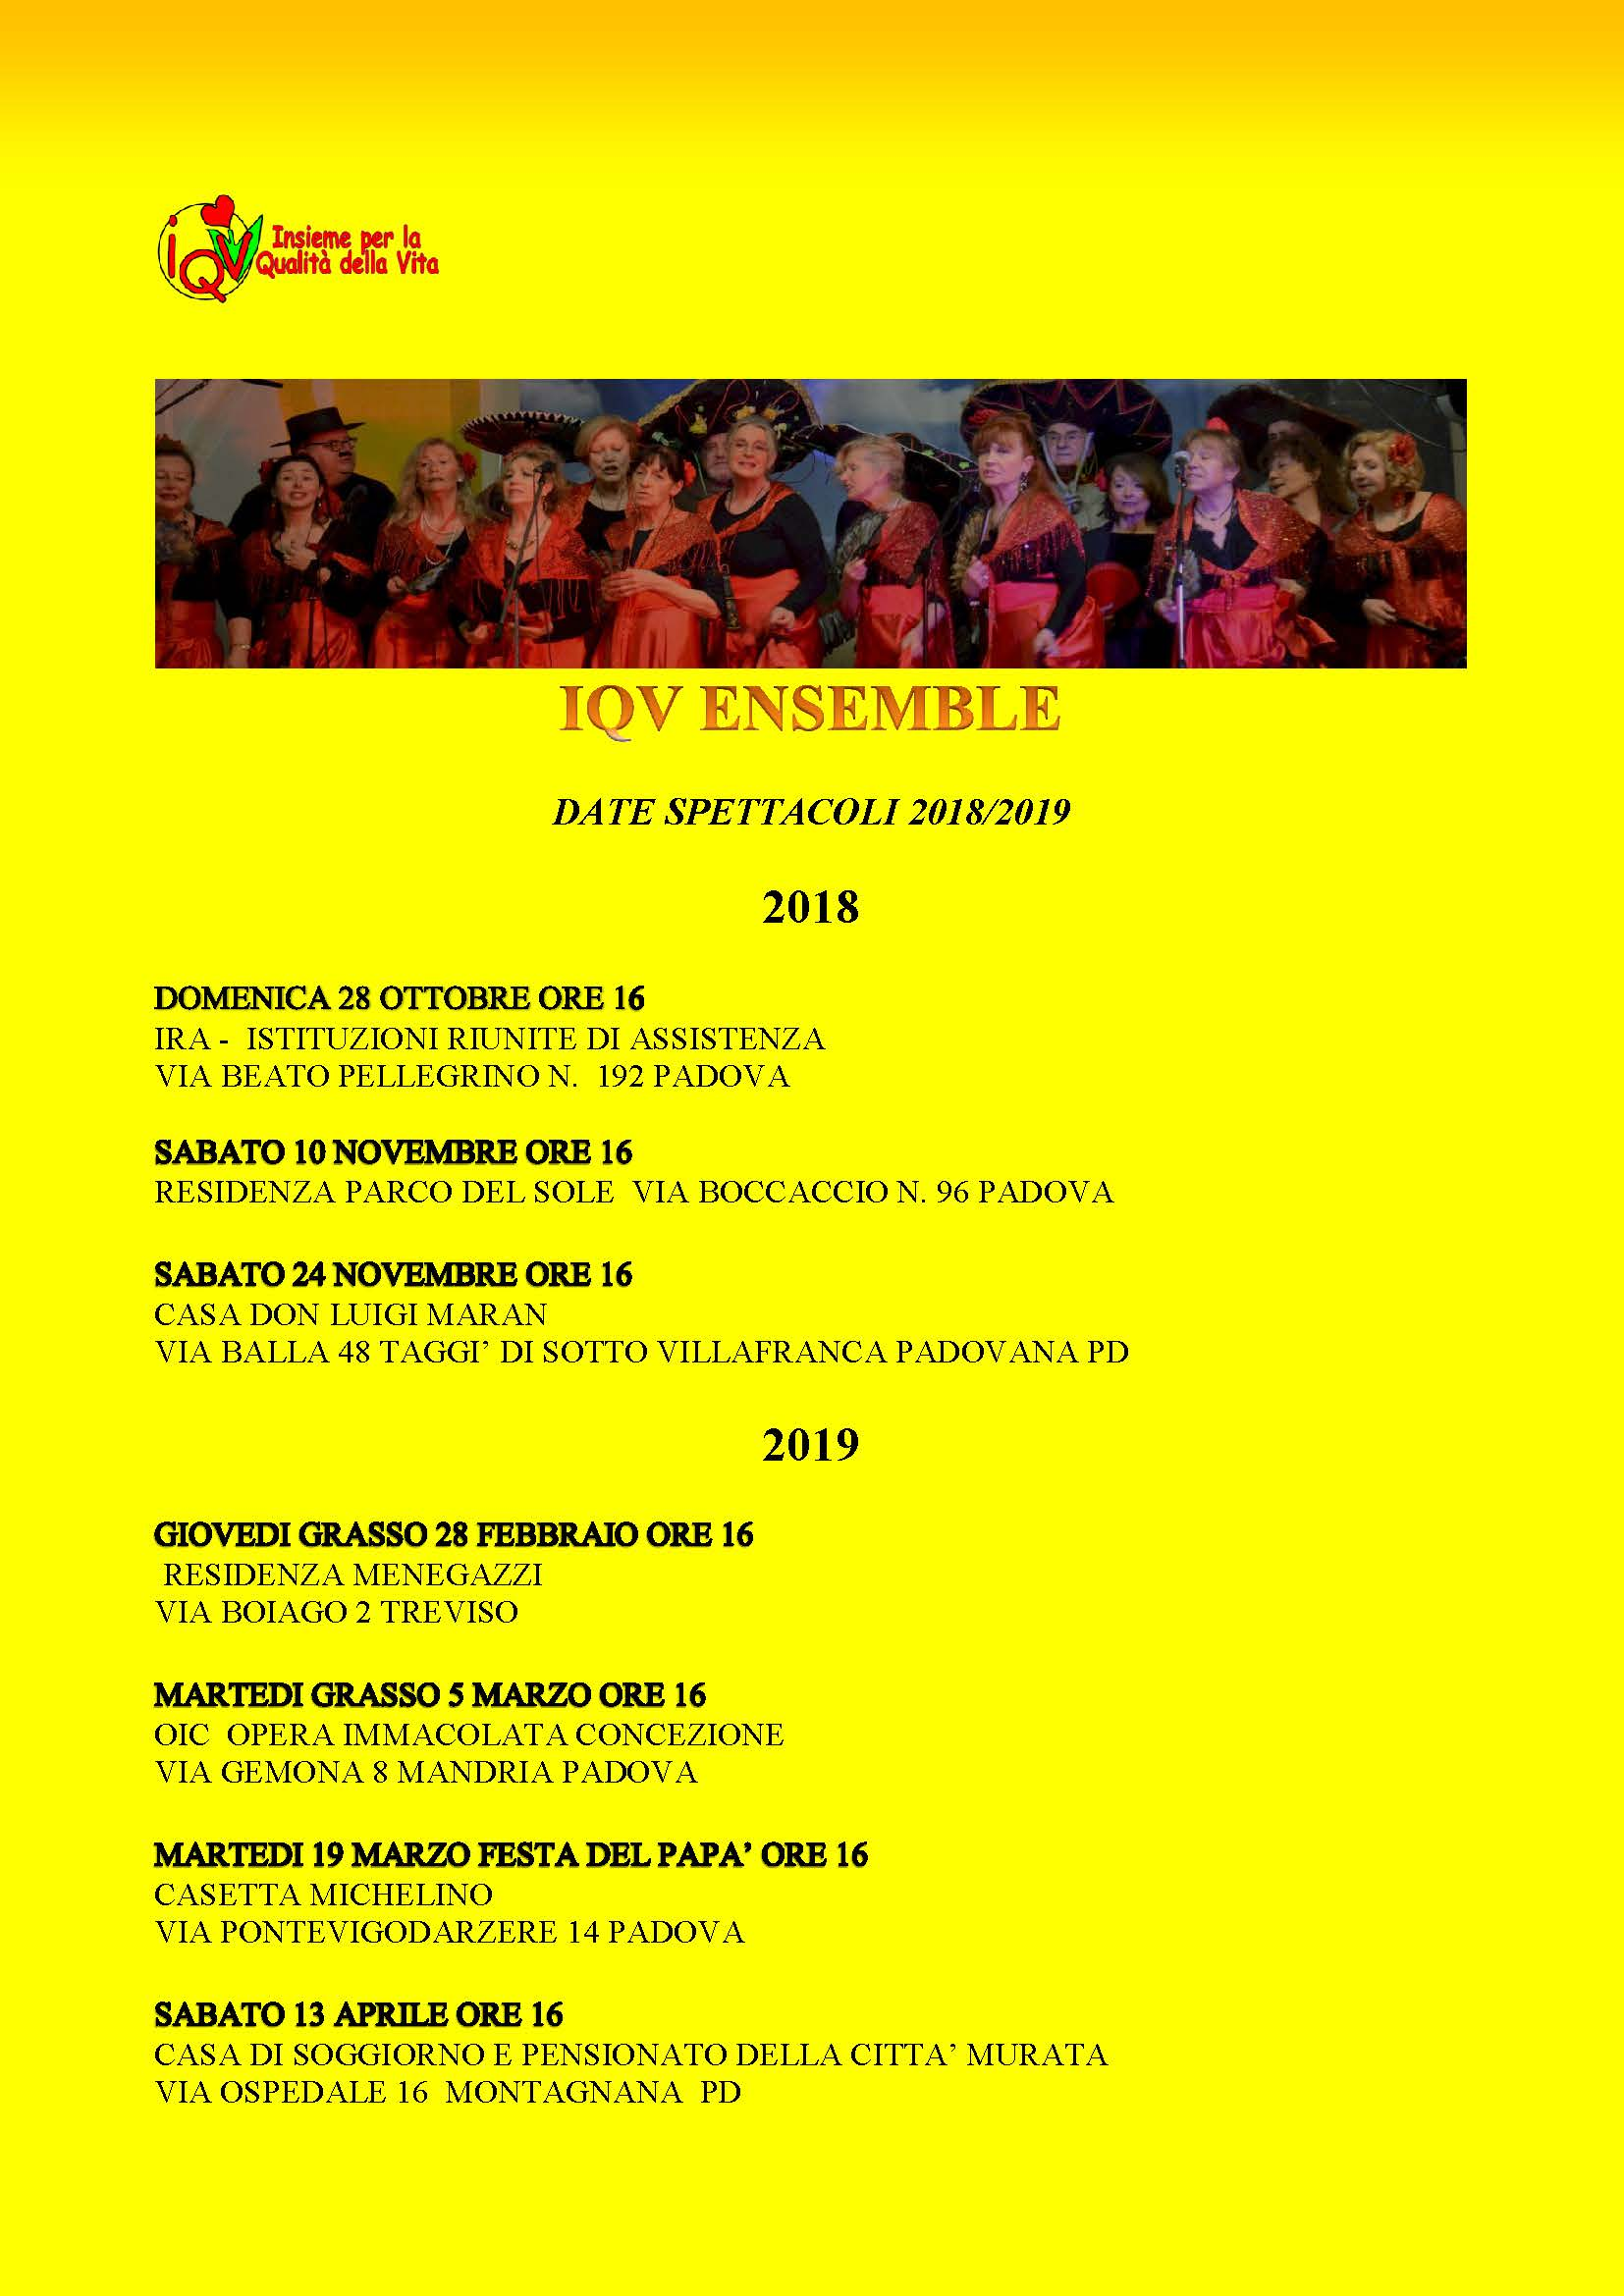 Calendario eventi IQV Ensemble